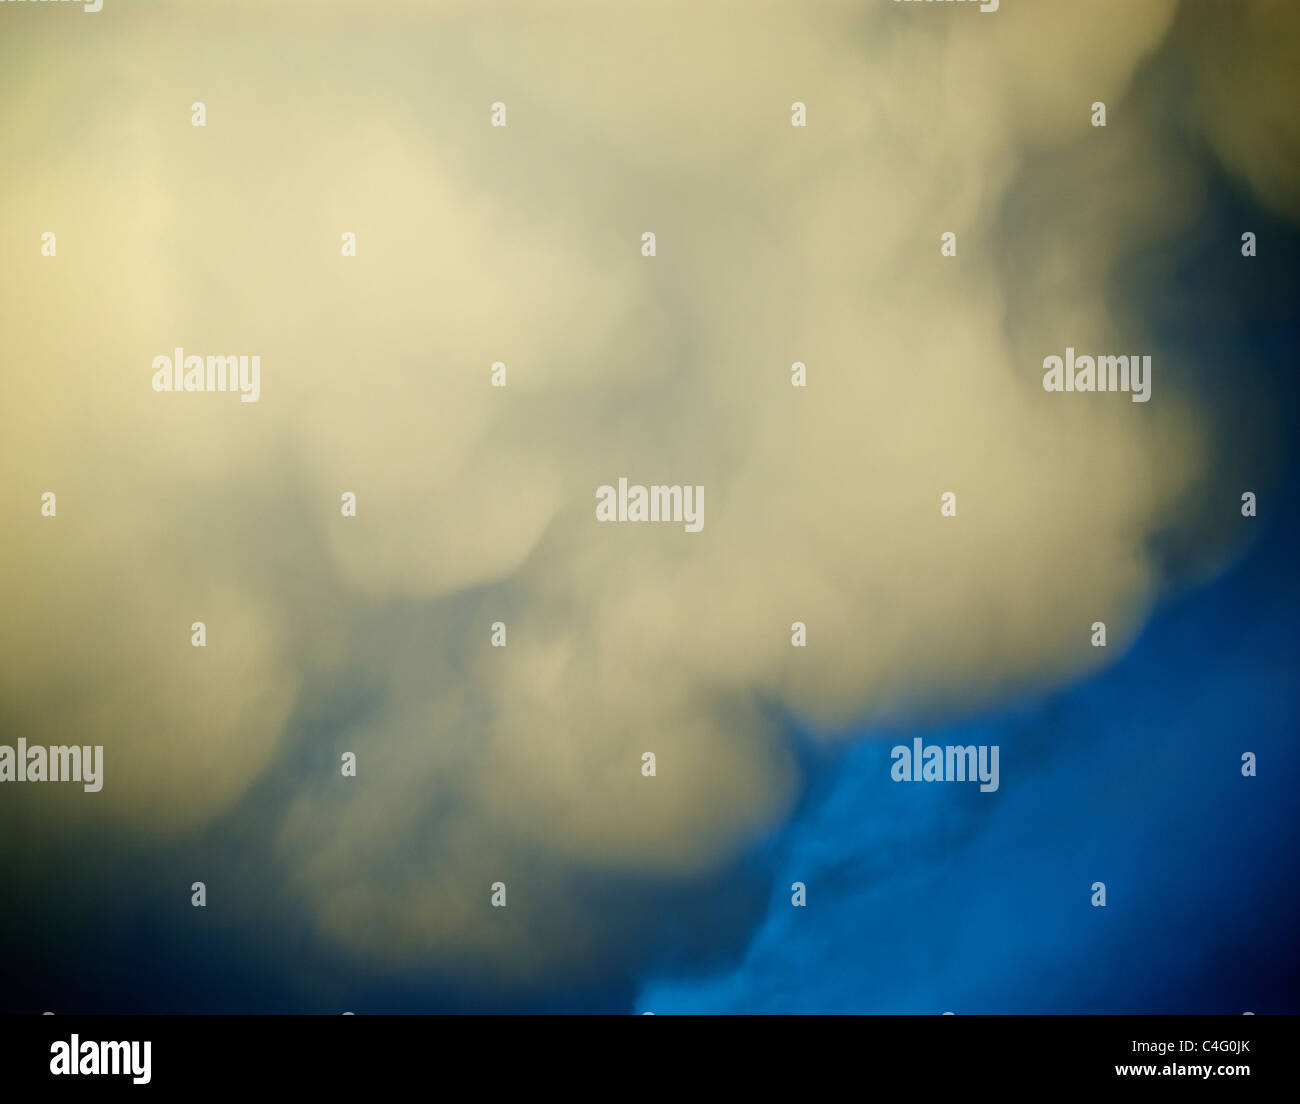 VOLCANIC ASH CLOUD - Stock Image